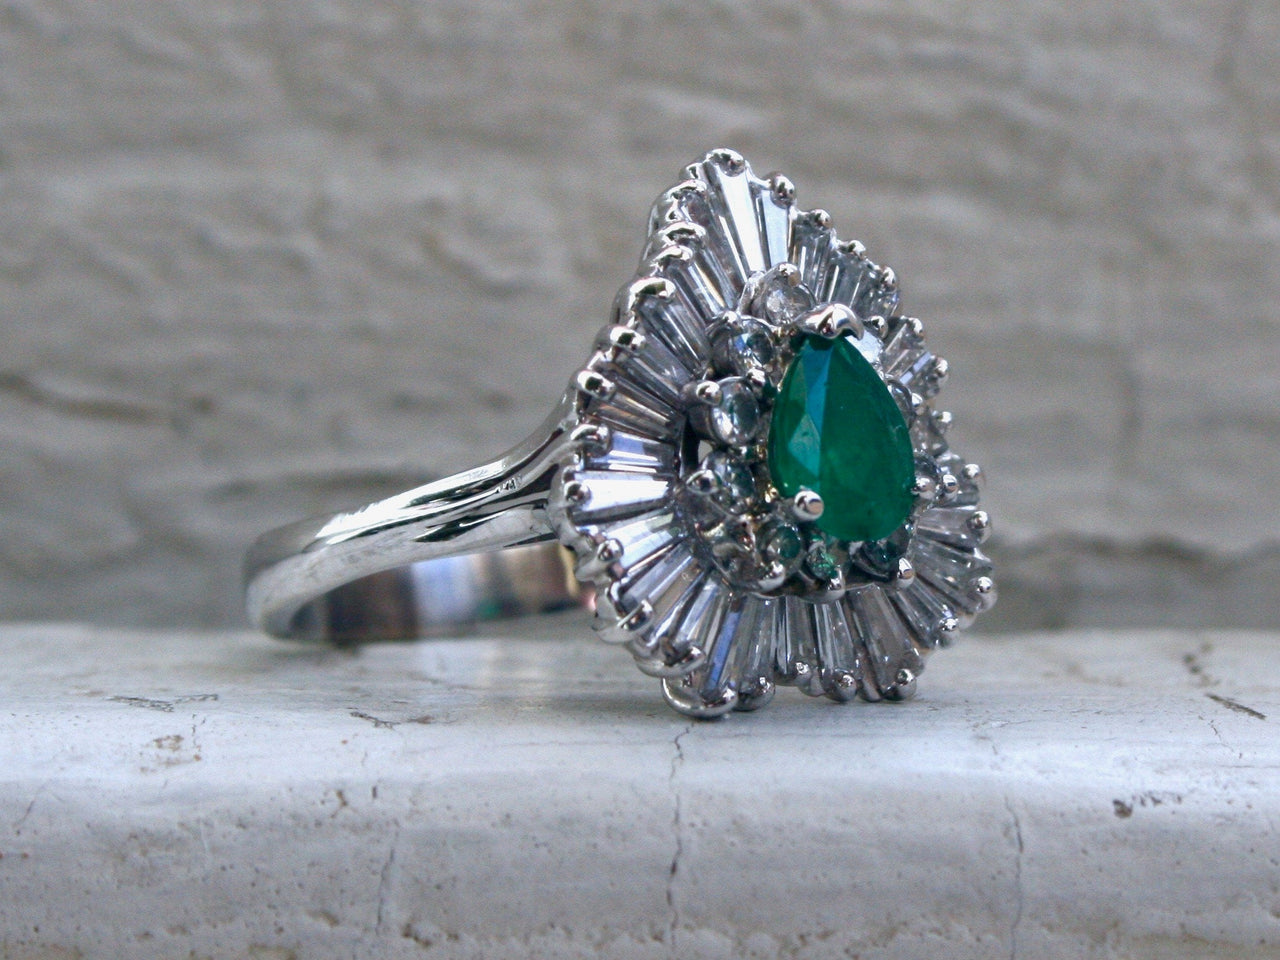 Stunning Vintage Emerald and Diamond Halo Engagement Ring - 2.60ct.